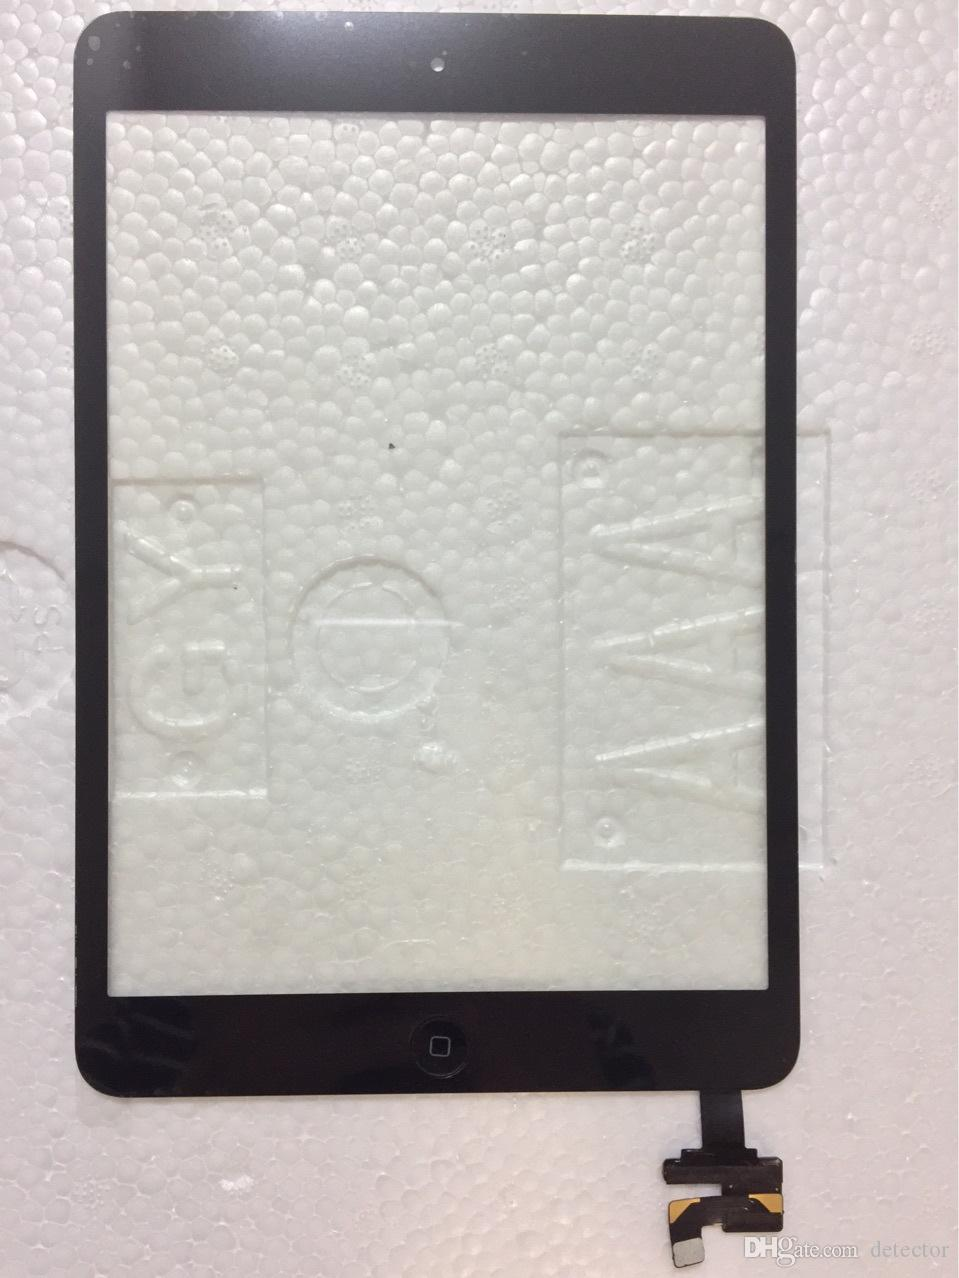 Digitizer Tablet for iPad 2 Black and White 7.9inch Touch Screen Glass Panel Digitizer Free DHL